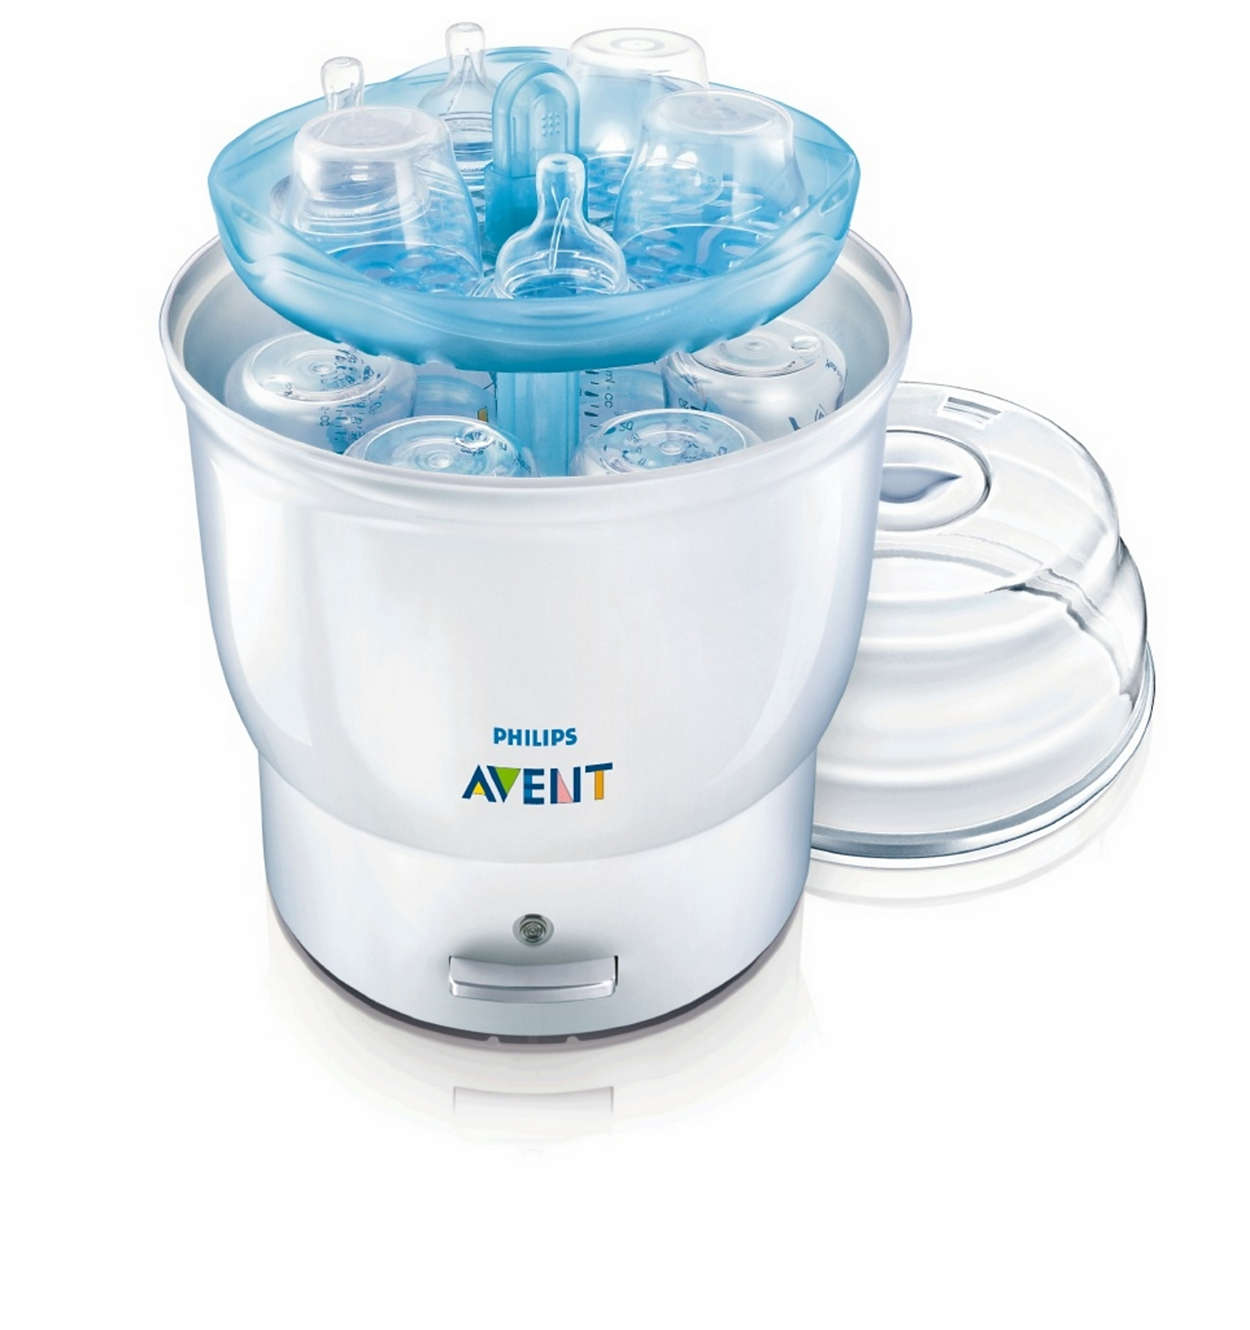 Electric Steam Sterilizer Scf274 26 Avent. Review Philips Avent 3 In 1 ...